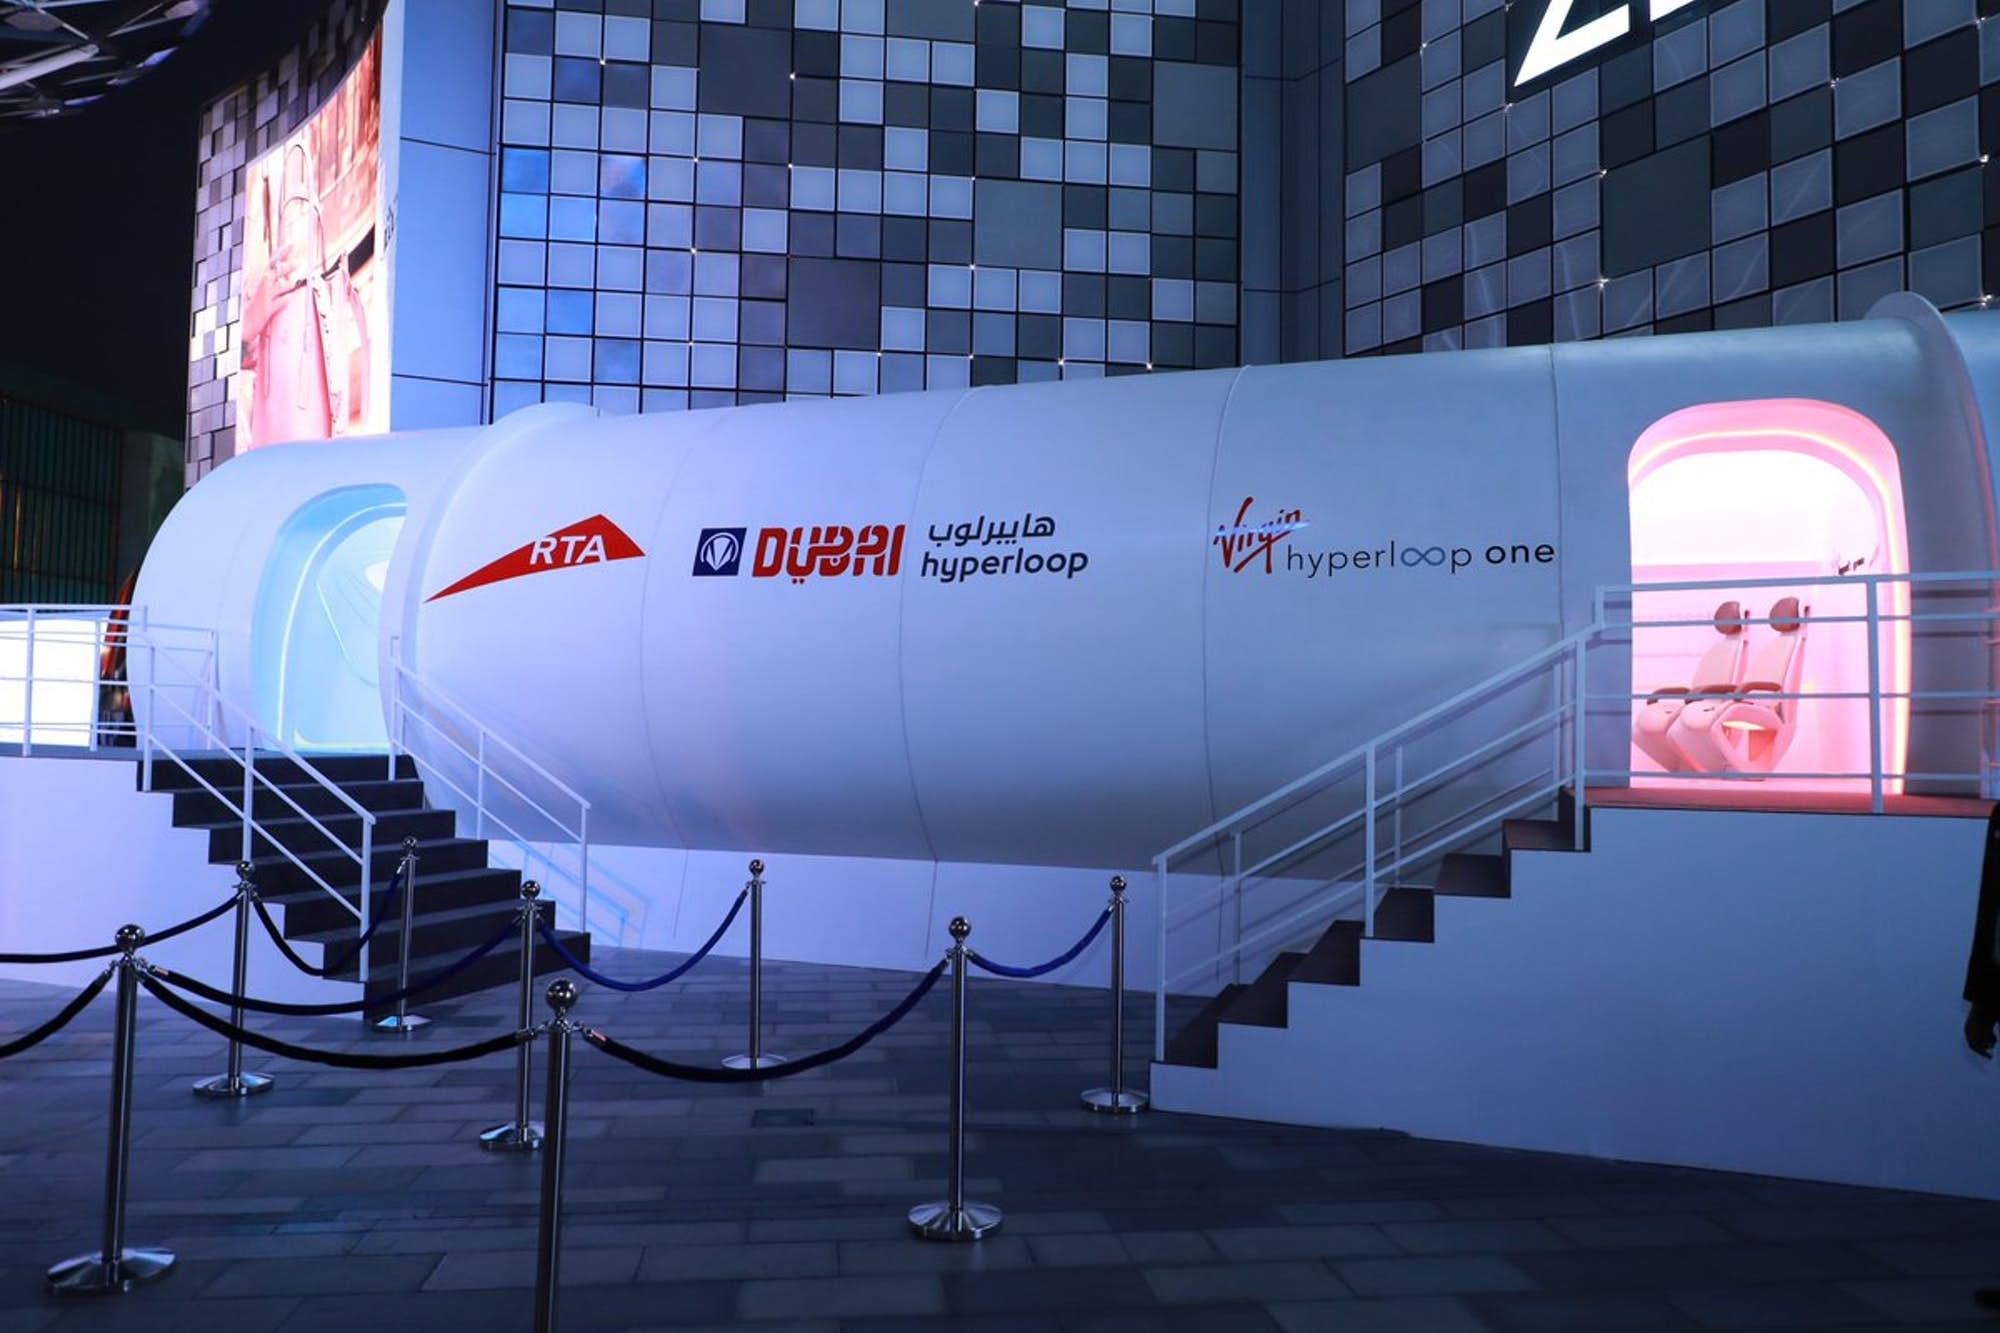 virgin-hyperloop-one-pod-full-scale-prototype-dubai